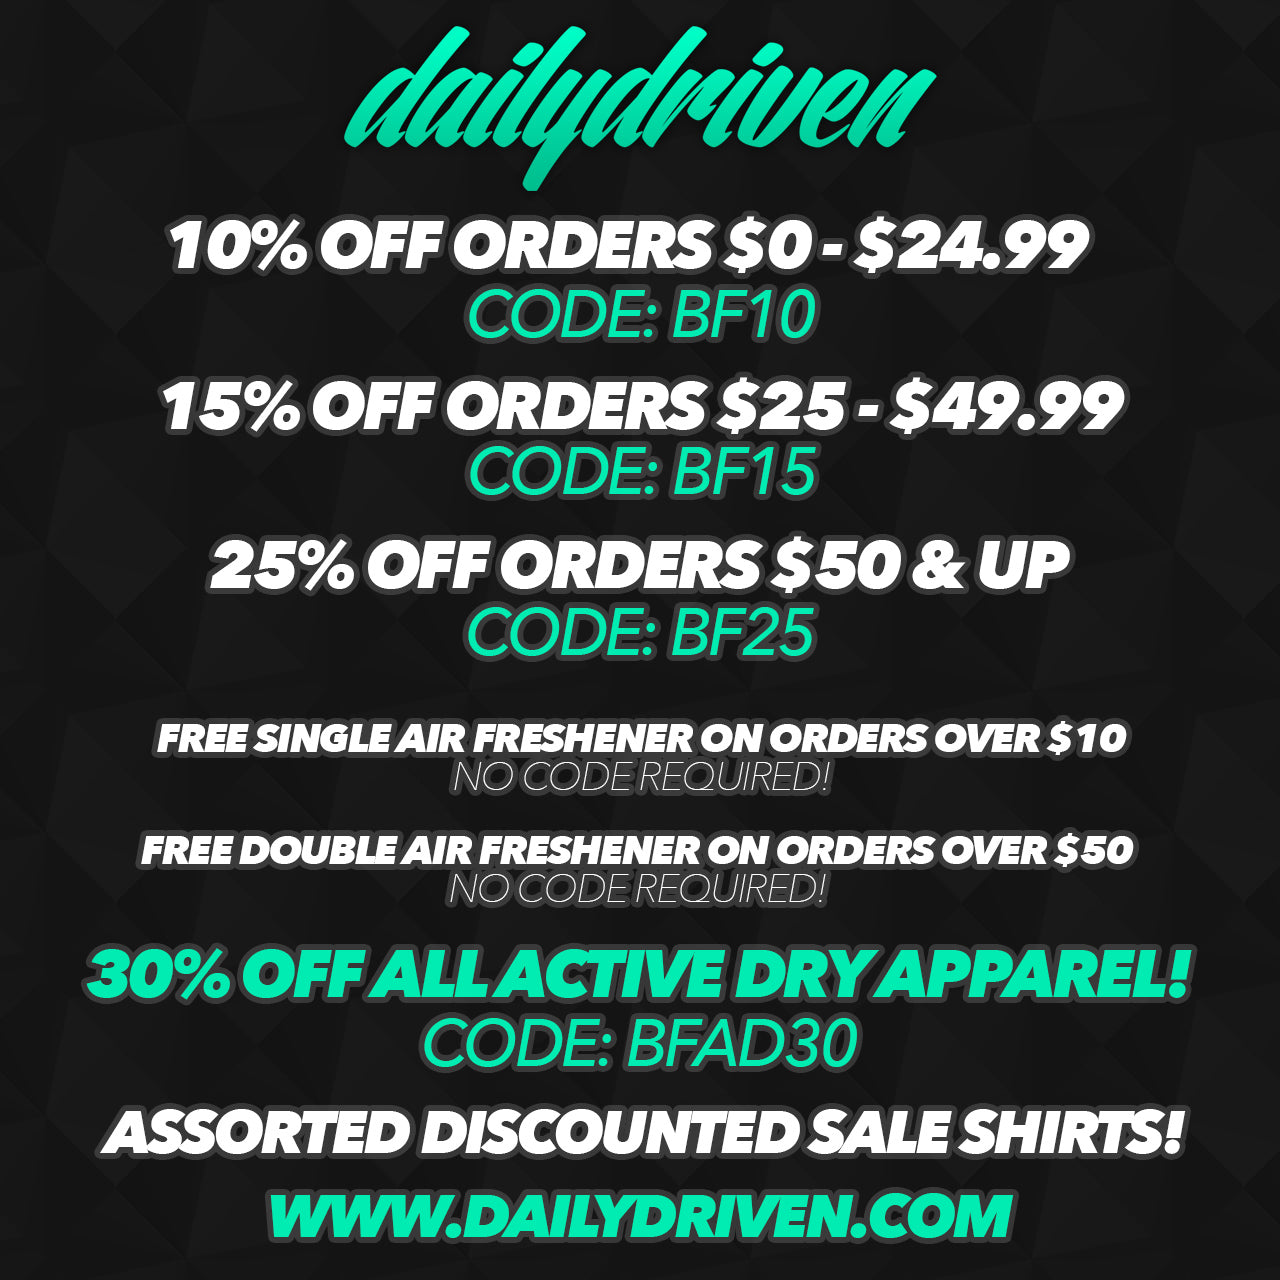 DailyDriven Black Friday